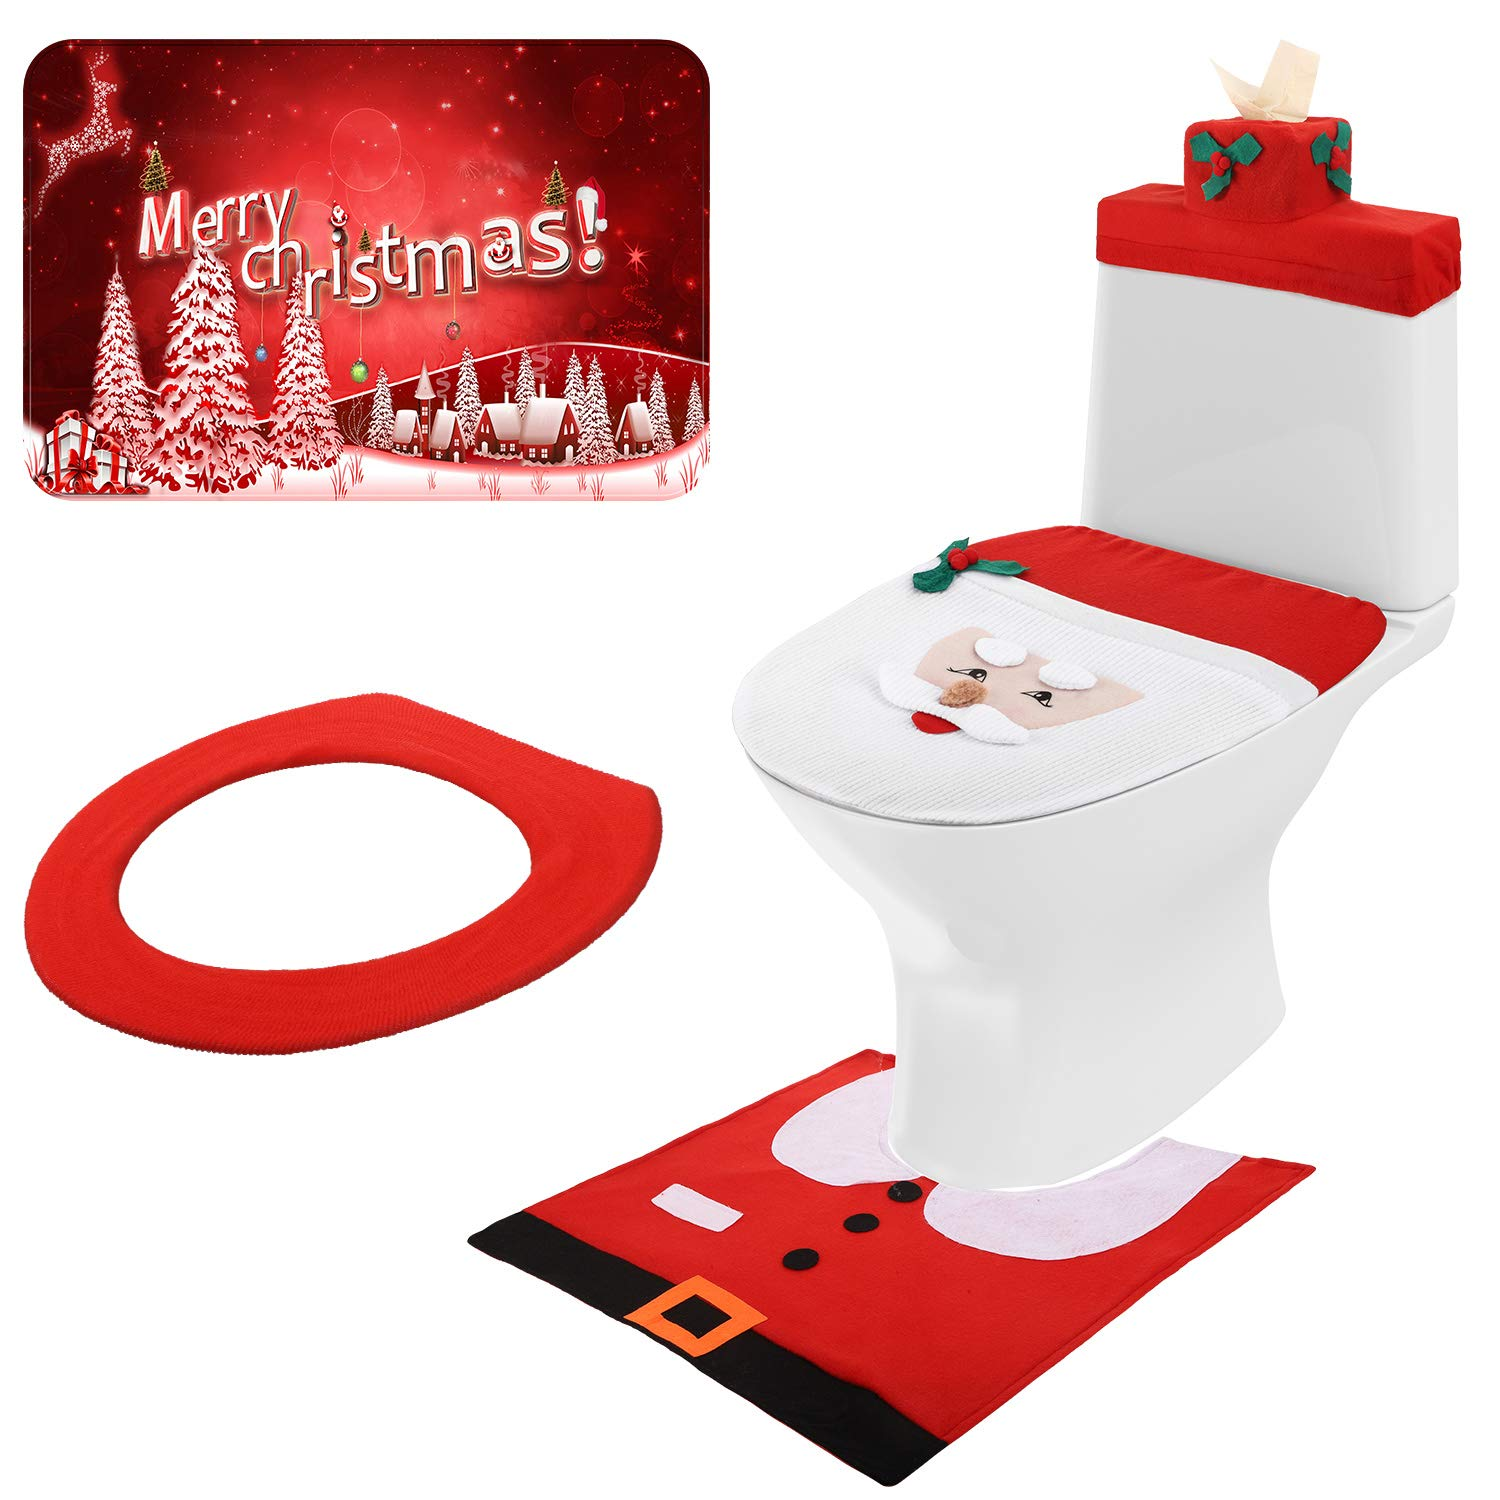 Buy Mudder 3d Nose Santa Toilet Seat Cover Set Christmas Toilet Cover Decorations Xmas Bathroom Decorations For Christmas Holiday Home Decor 5 Pieces Totally Online At Low Prices In India Amazon In